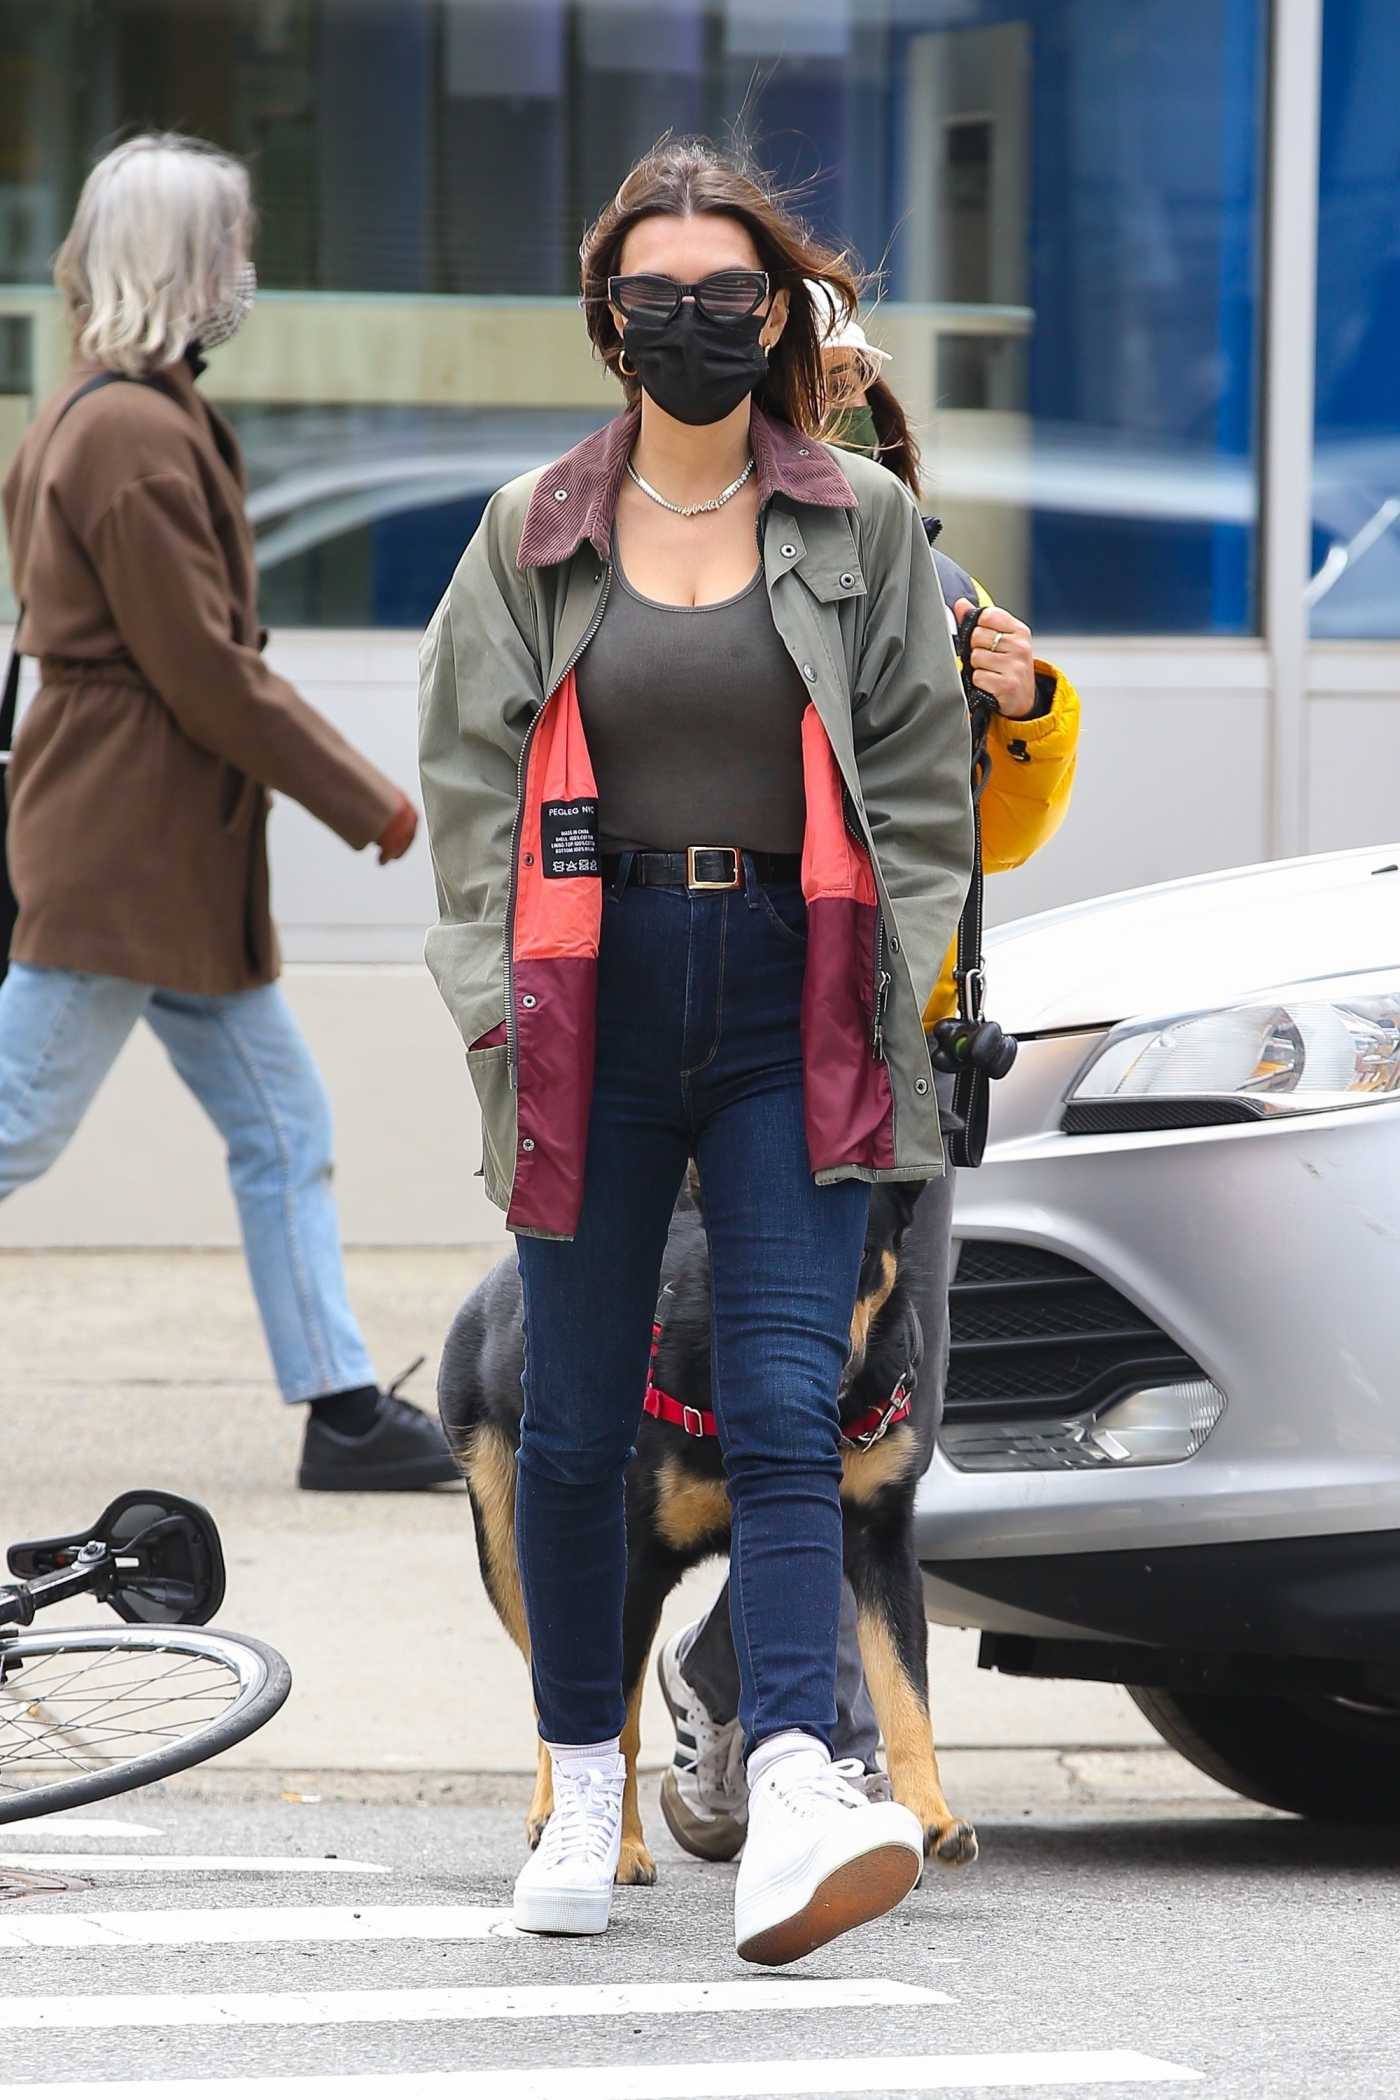 Emily Ratajkowski in an Olive Jacket Enjoys a Stroll with Friends and Her Dog in New York 04/22/2021